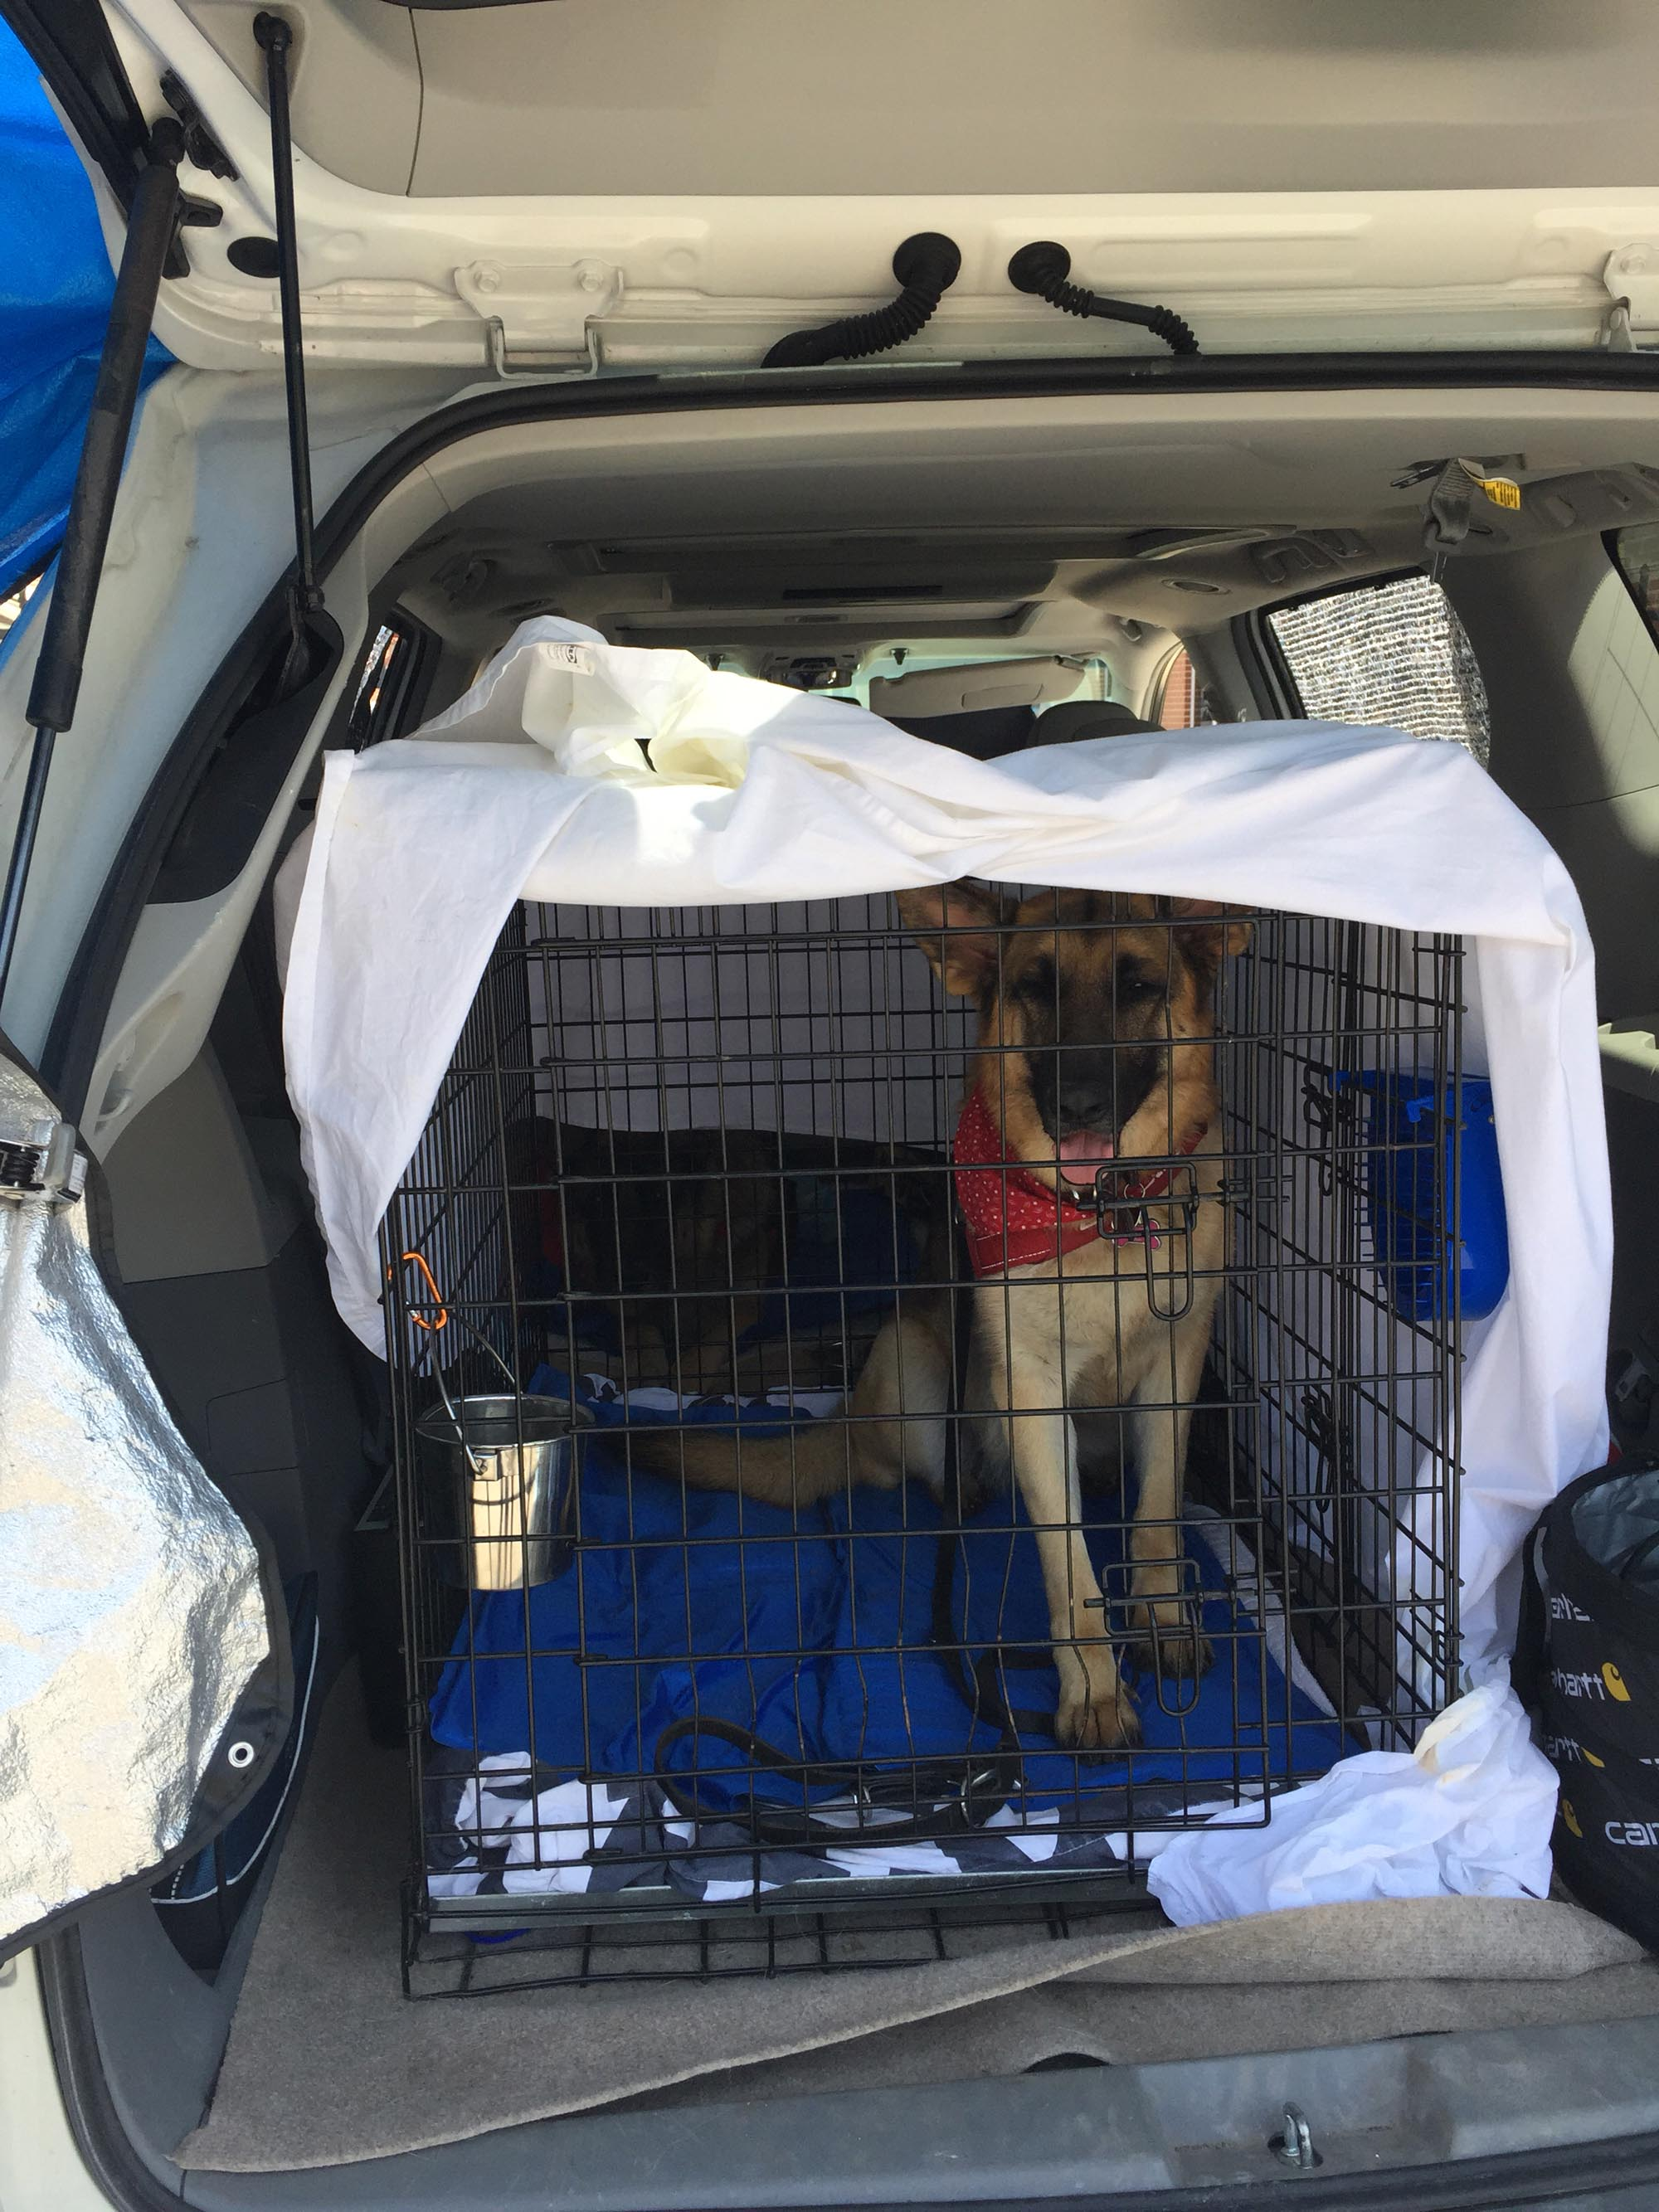 German Shepherd Dog in a crate in a car.